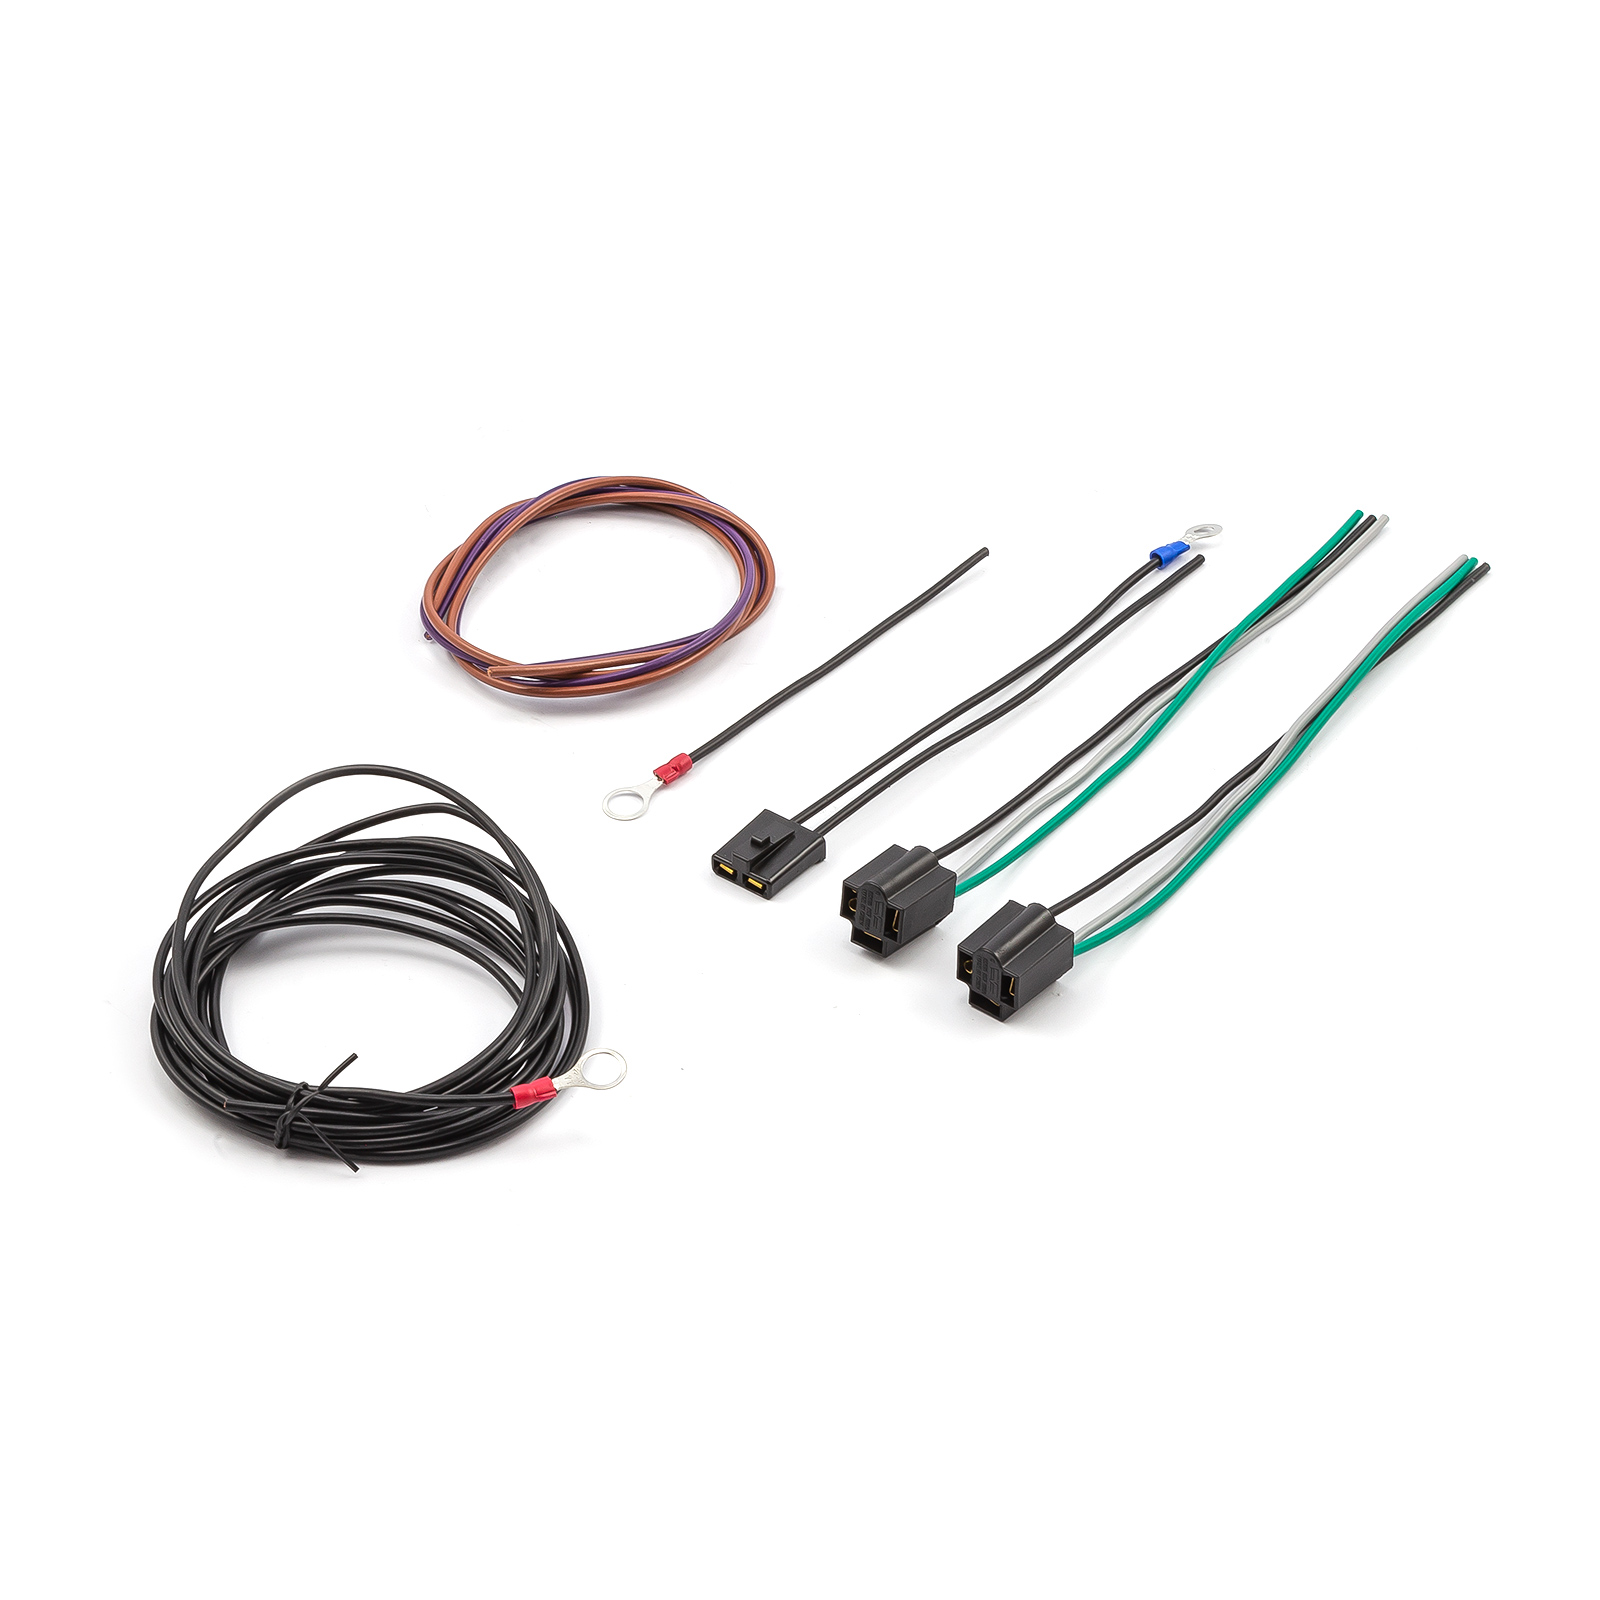 Pce Wiring Harness Pce368